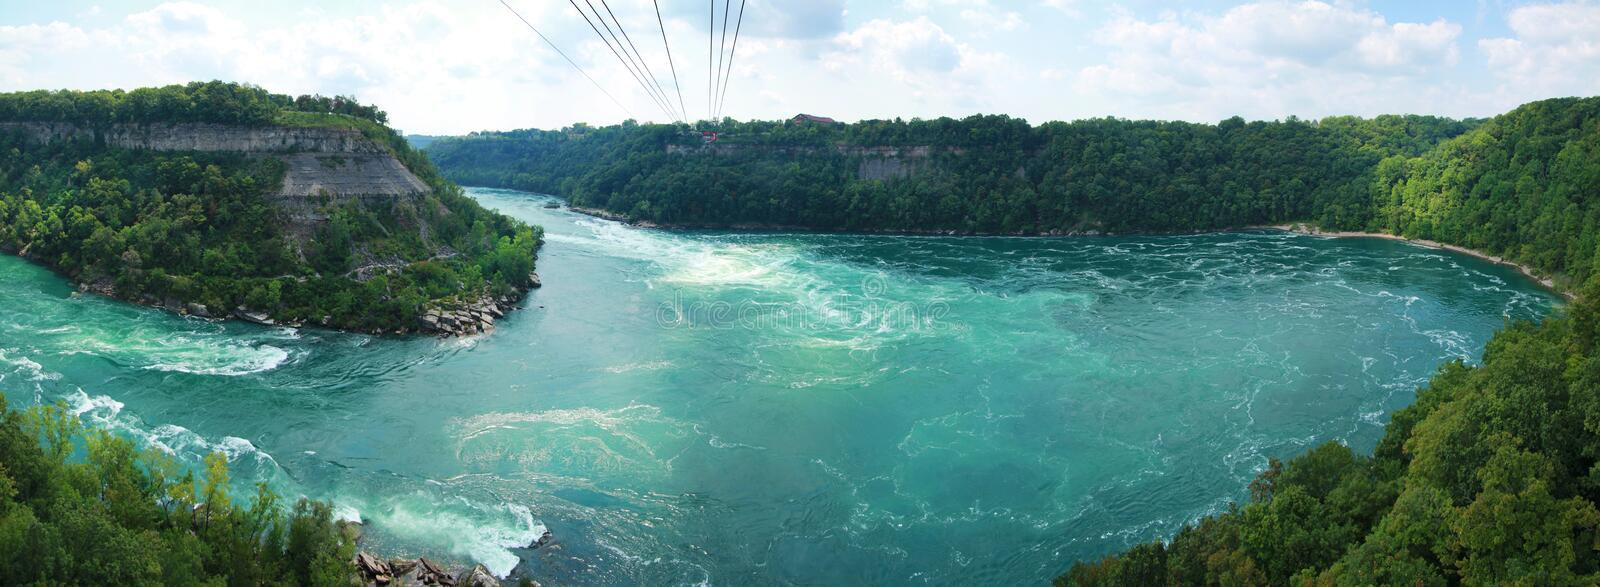 Whirlpool rapids. Panorama of whirlpool Rapids viewed from the cable Car in Niagara Falls stock photos